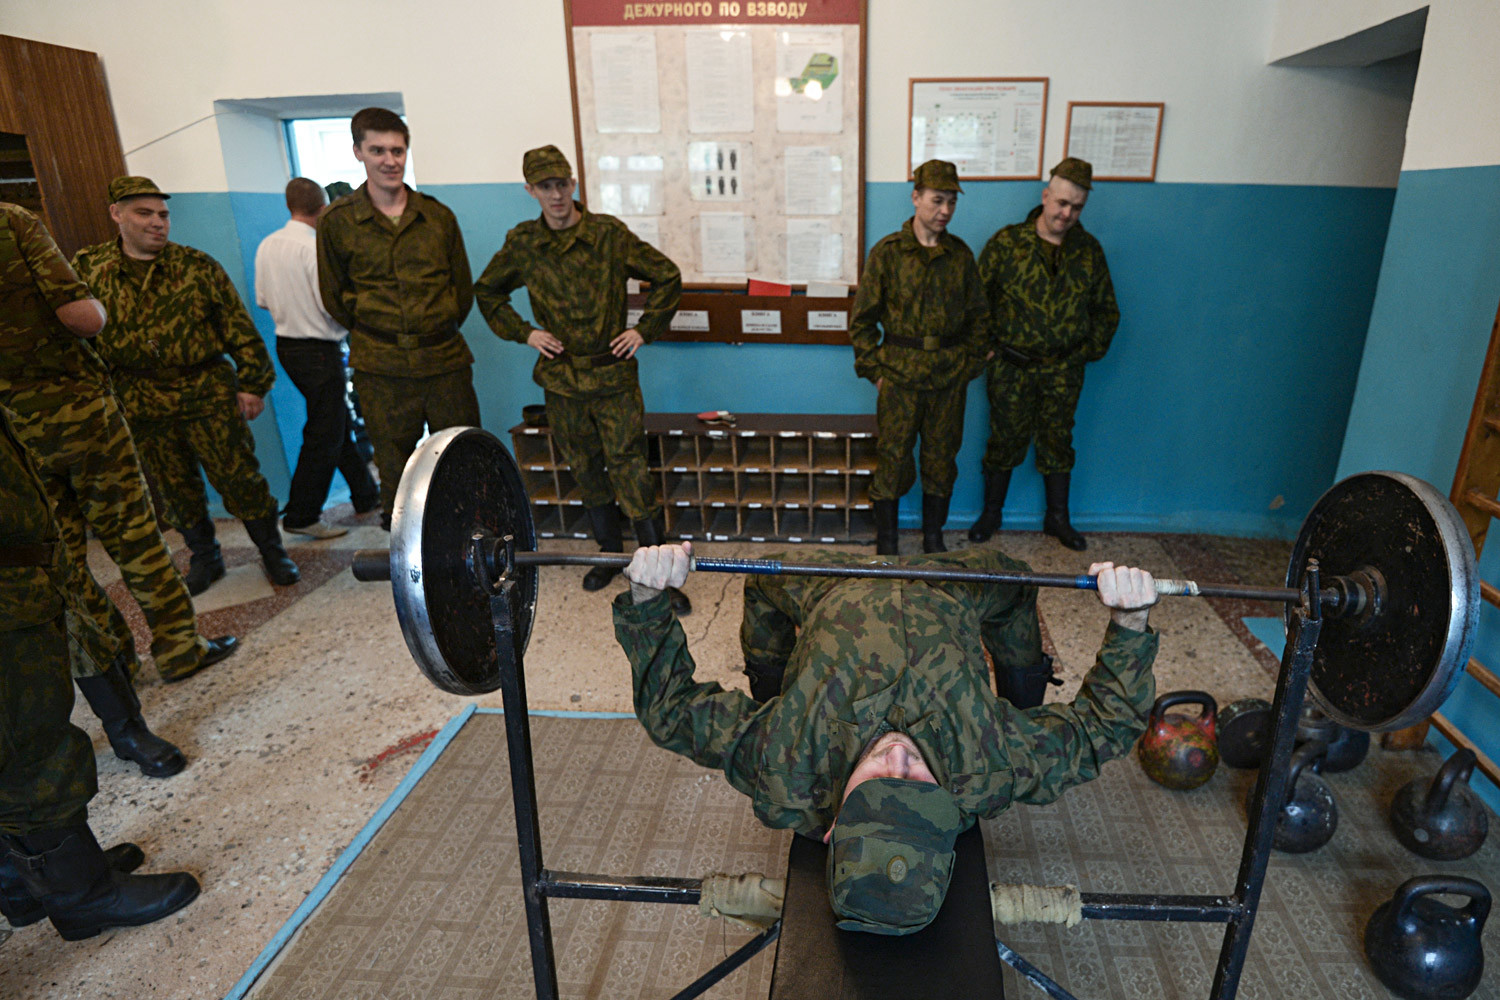 Reservists summoned for training, in a barrack at a base for storing, repairing and reconstructing military equipment in the city of Novosibirsk